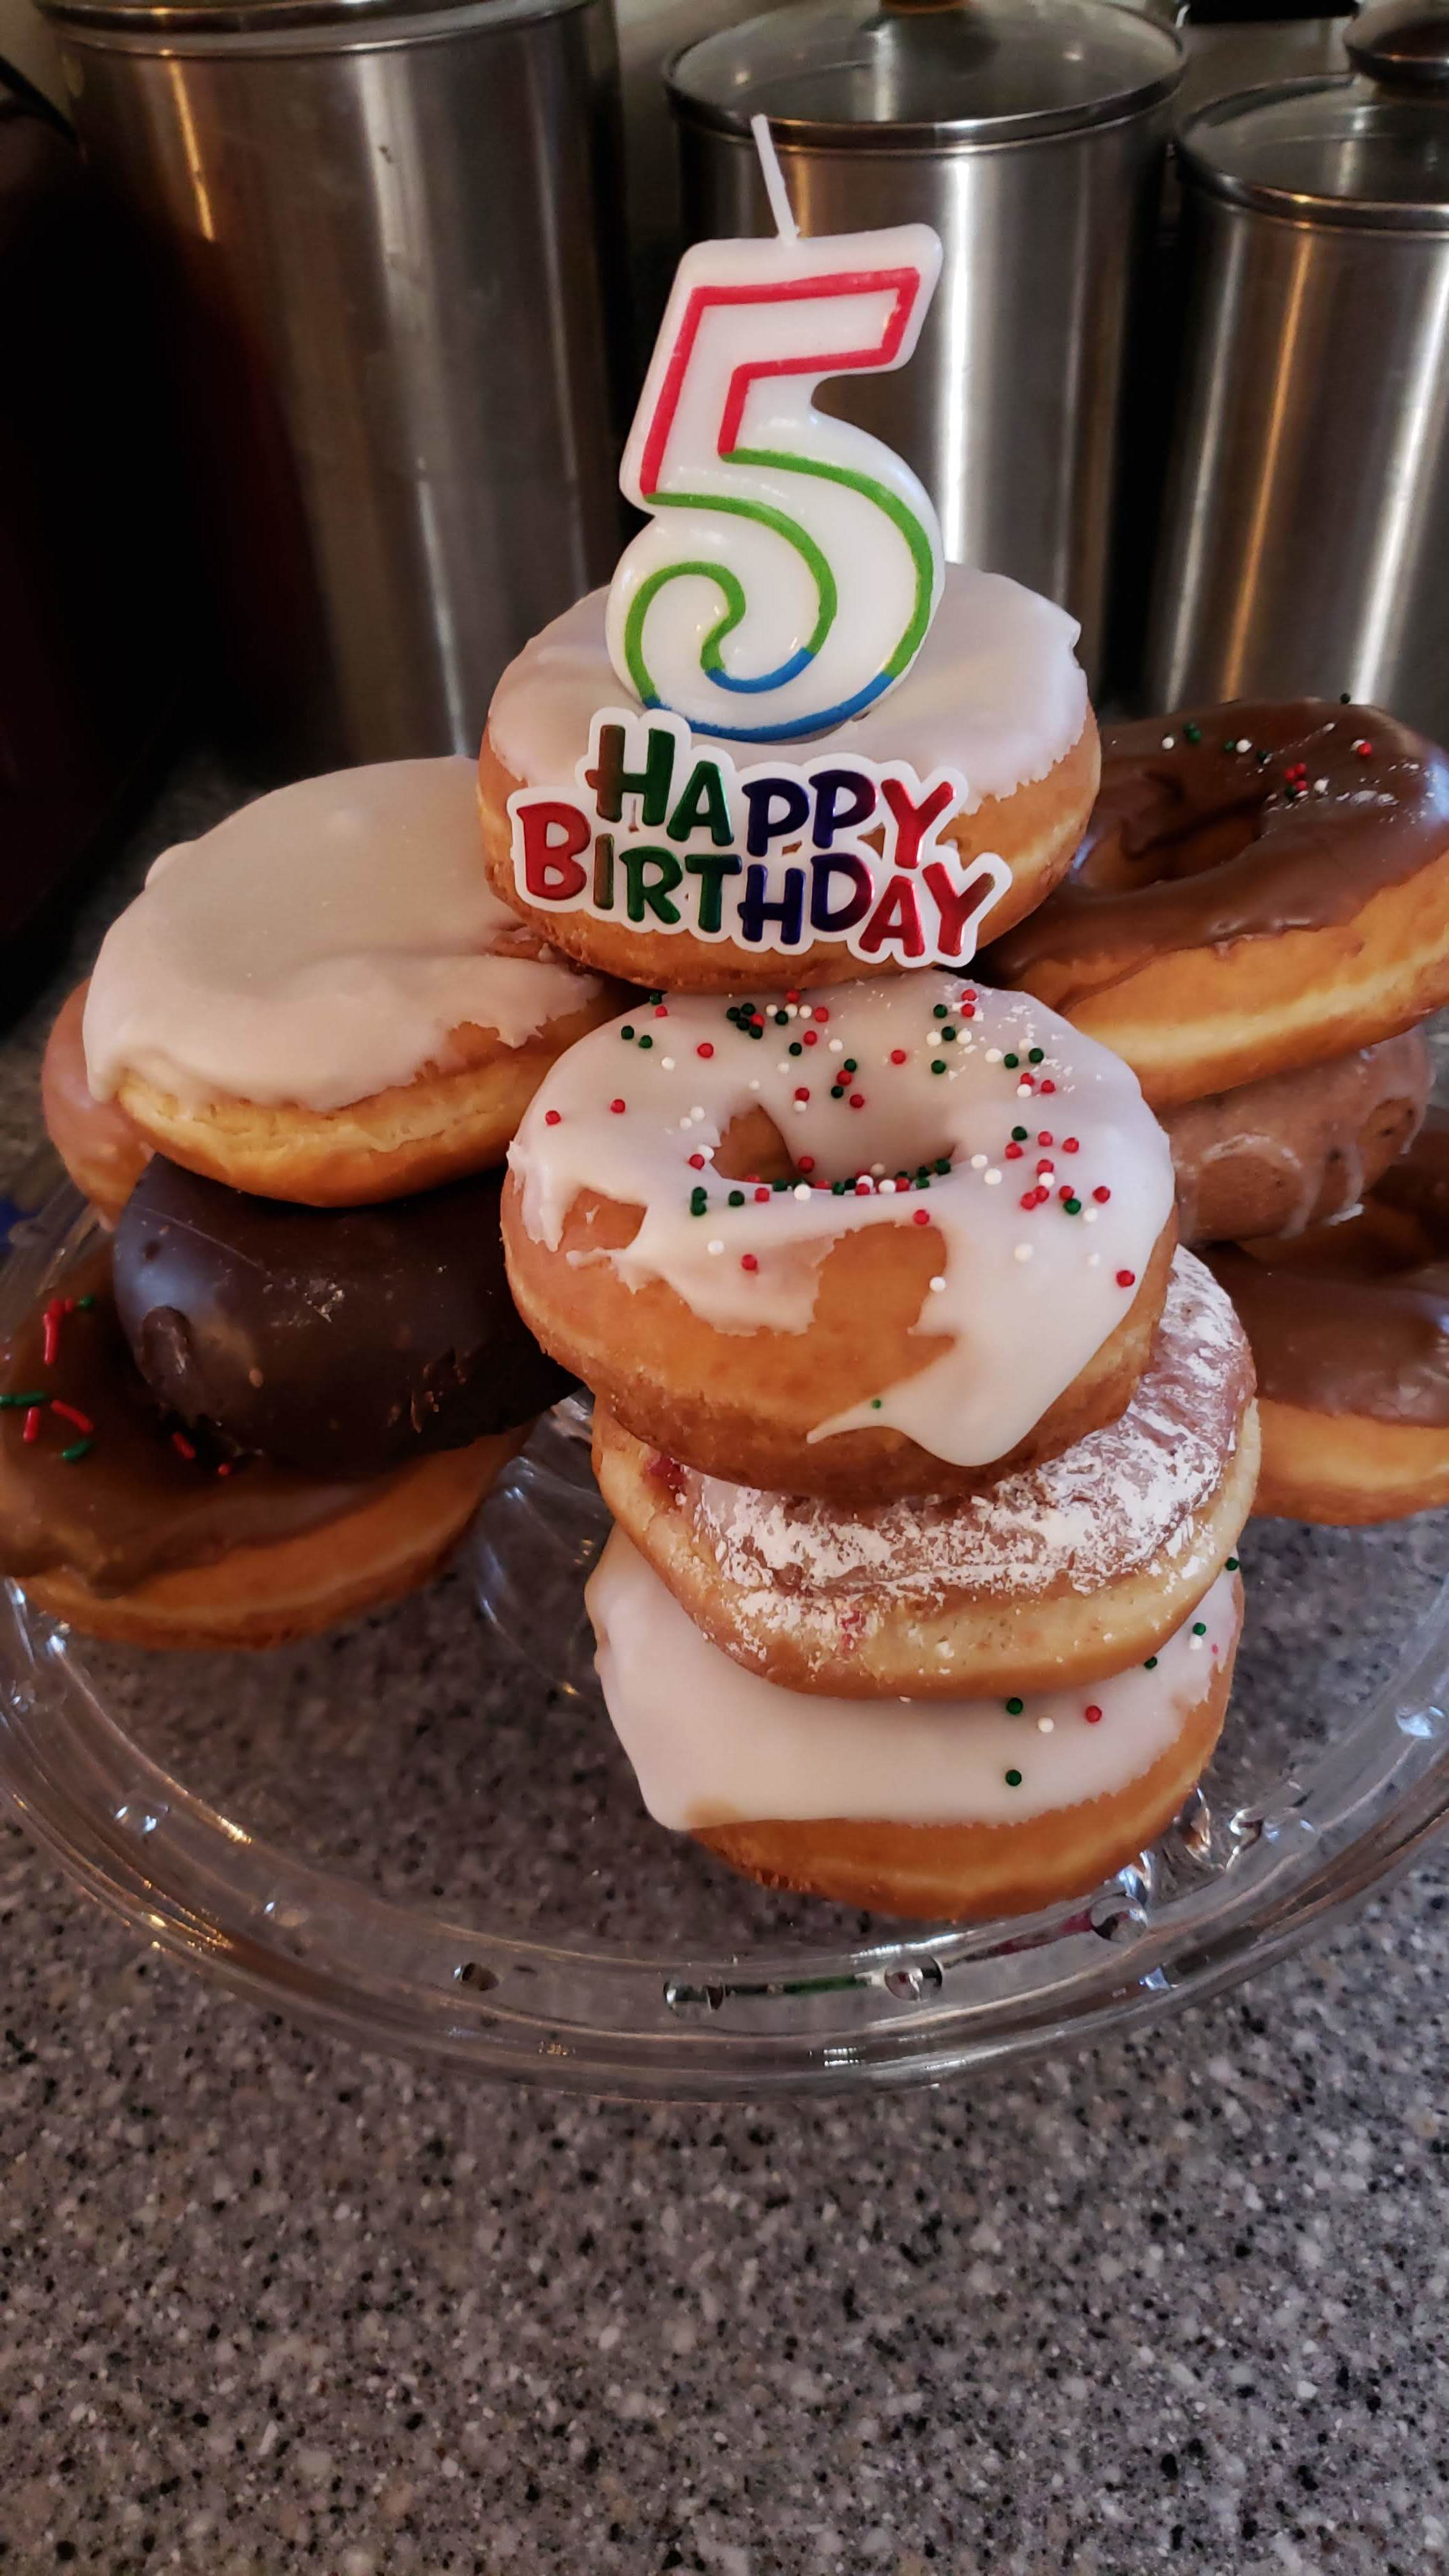 When you attend a birthday party at our house, I can guarantee it will have a doughnut cake, because they are super easy to put together, incredibly inexpensive to make (we have done Krispy Kremes before, but went with Safeway and Walmart this time around), and give your guests some options.